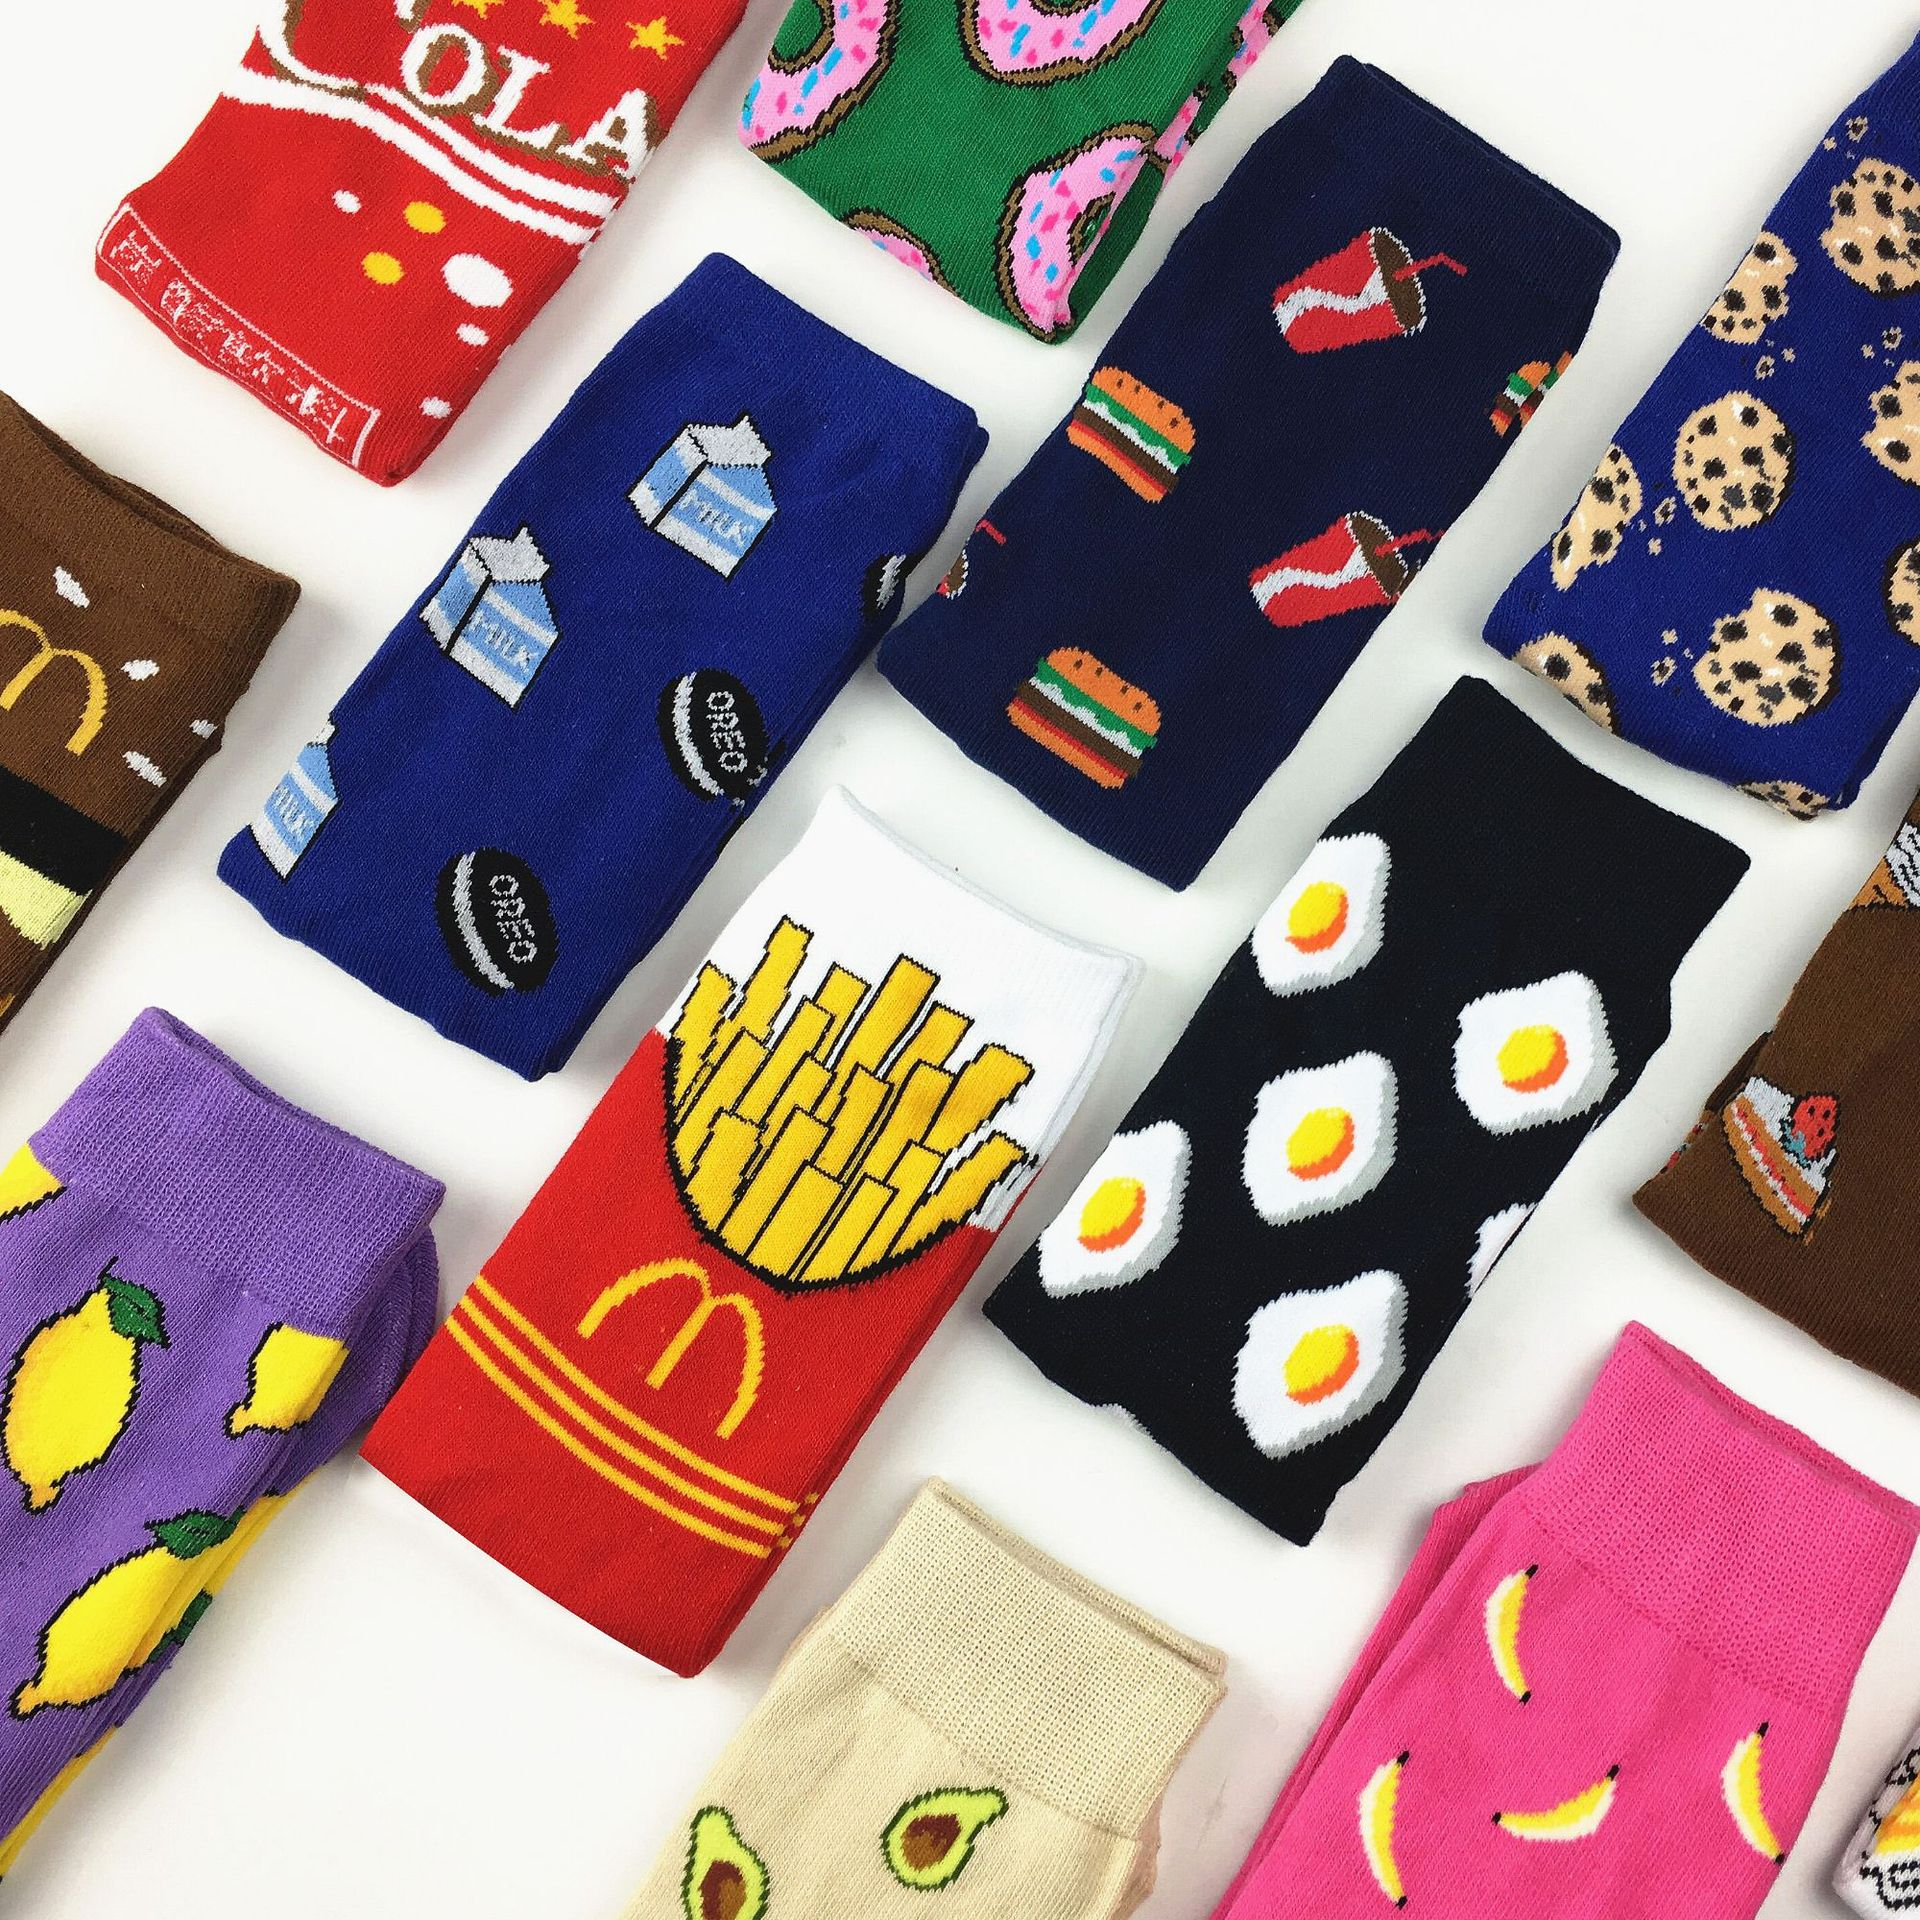 Women Men Socks Hot Fashion Middle Tube Socks Lemon Milk Ice-cream Biscuits Warmth Socks Multicolor Cute Socks All Cotton